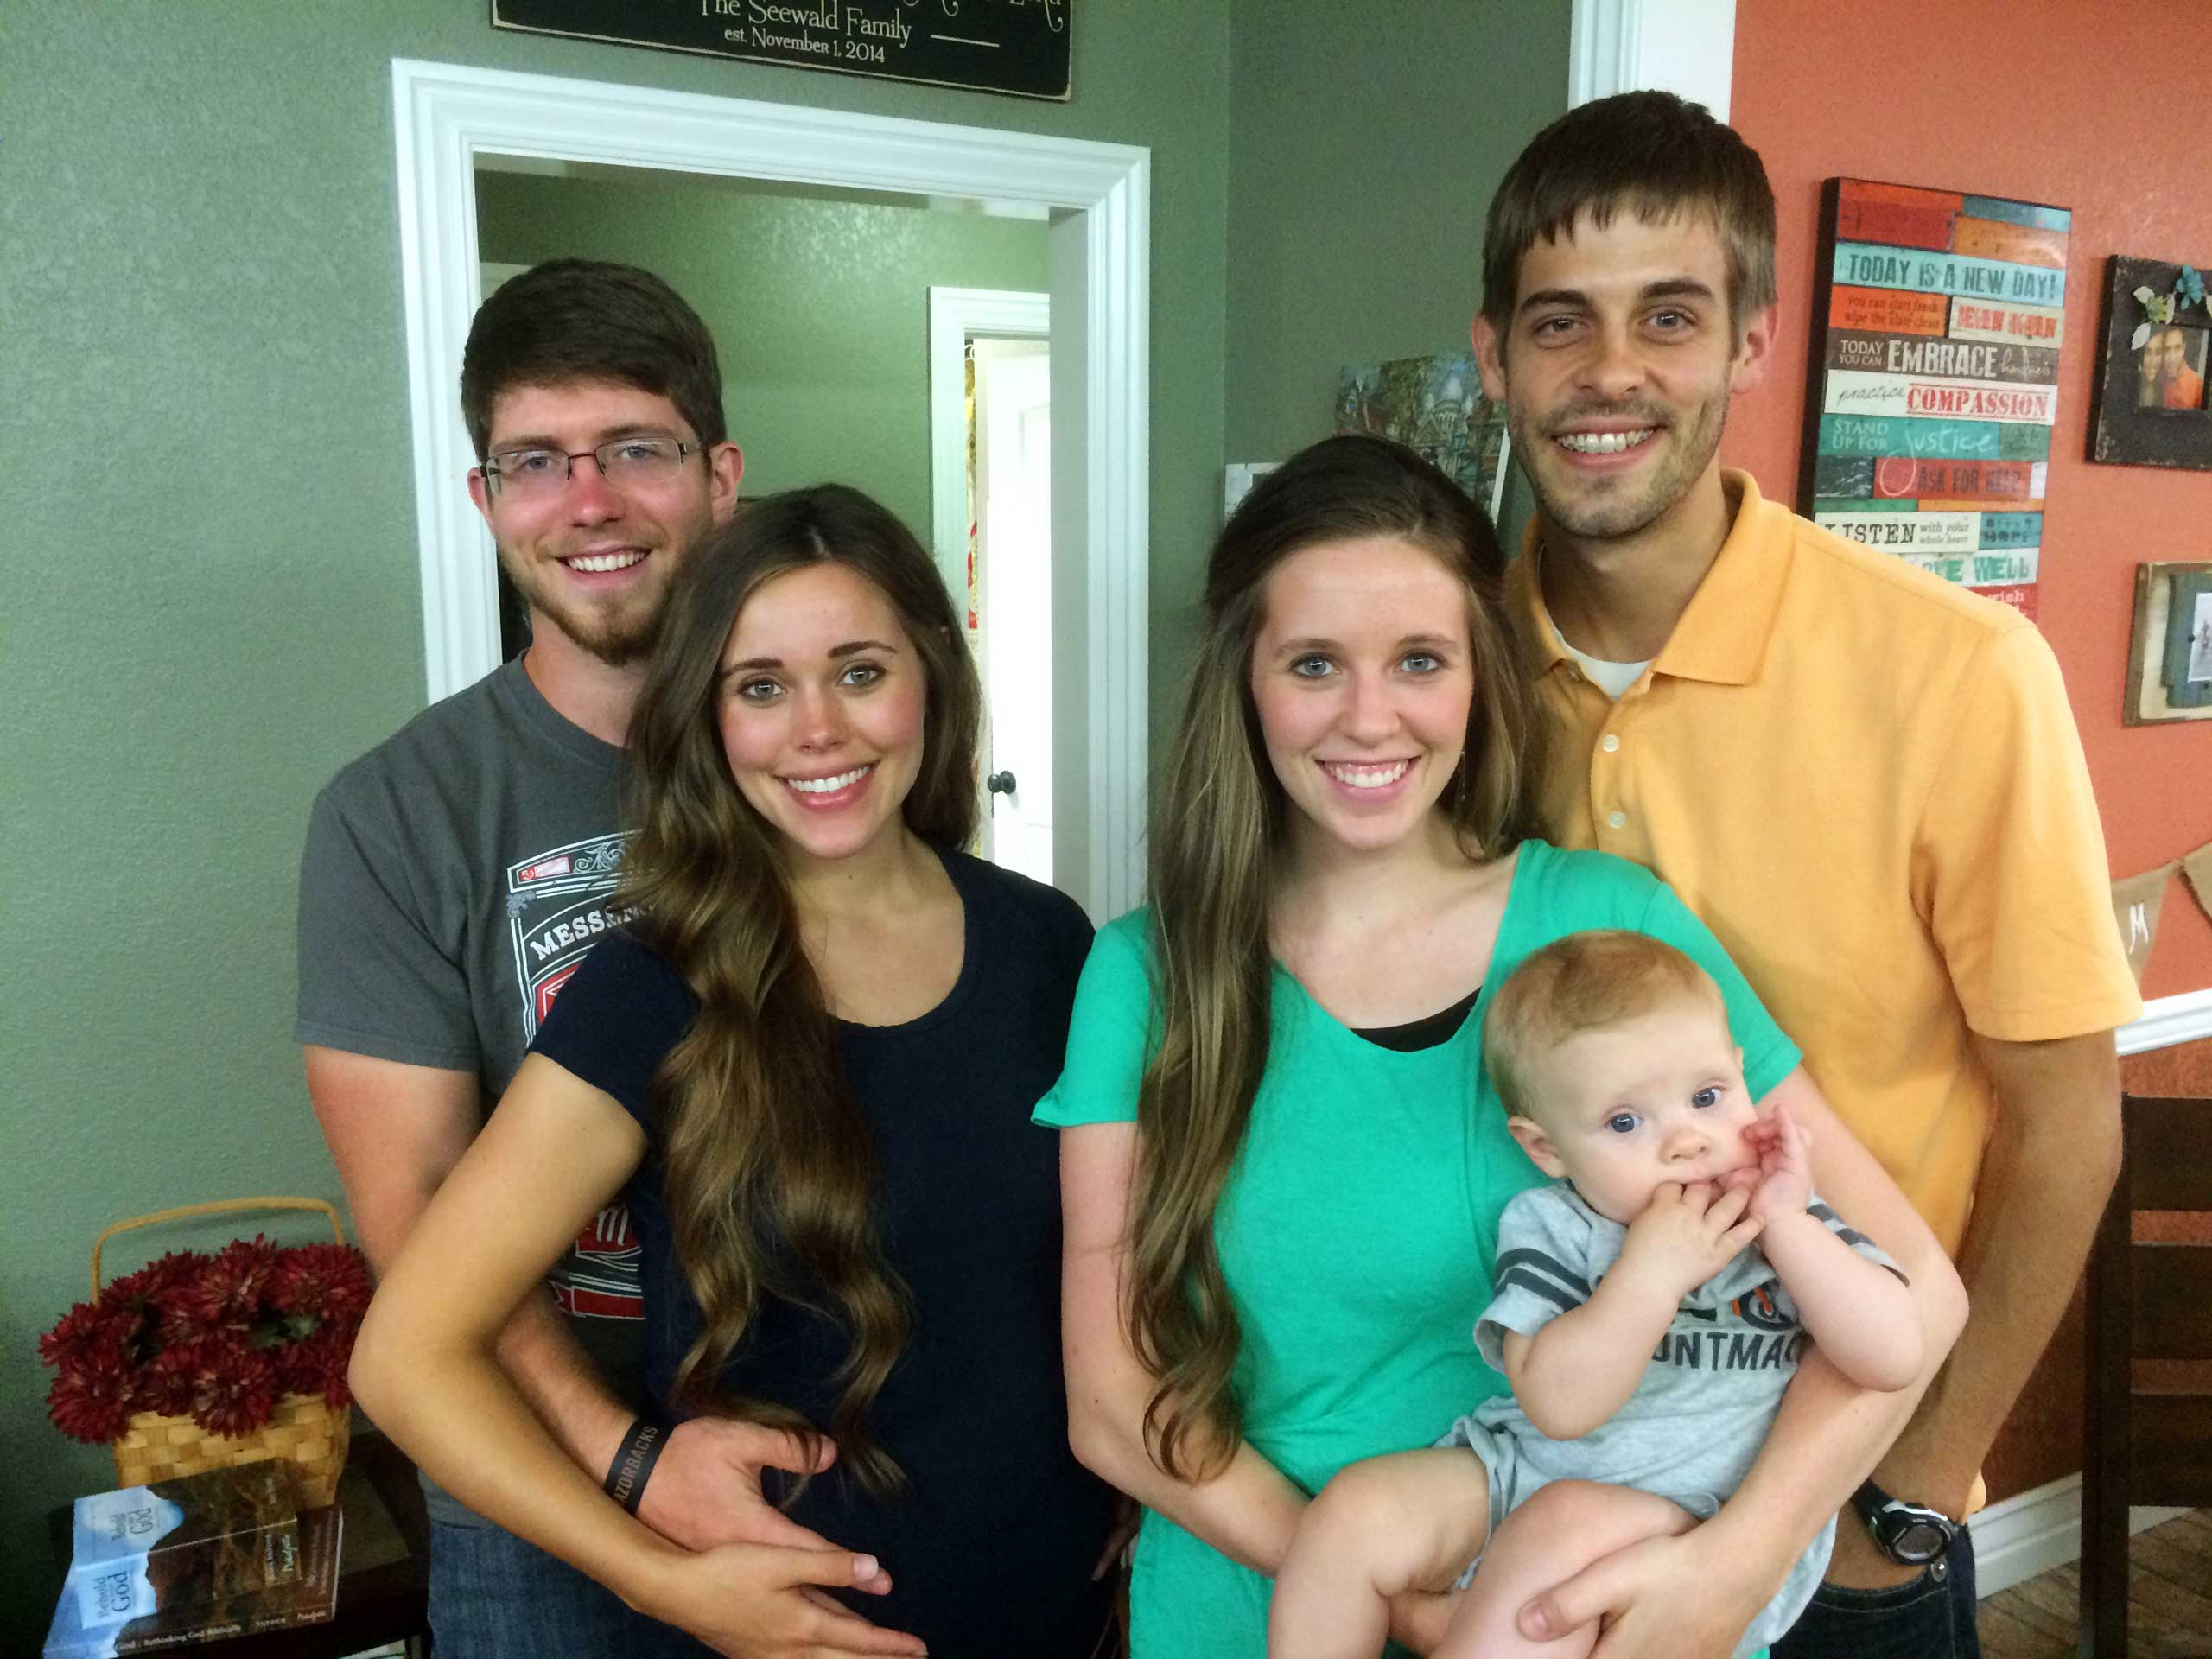 This image released by TLC shows, from left, Ben Seewald, Jessa Seewald, Jill Dillard, holding her baby Israel Dillard and Derik Dillard.